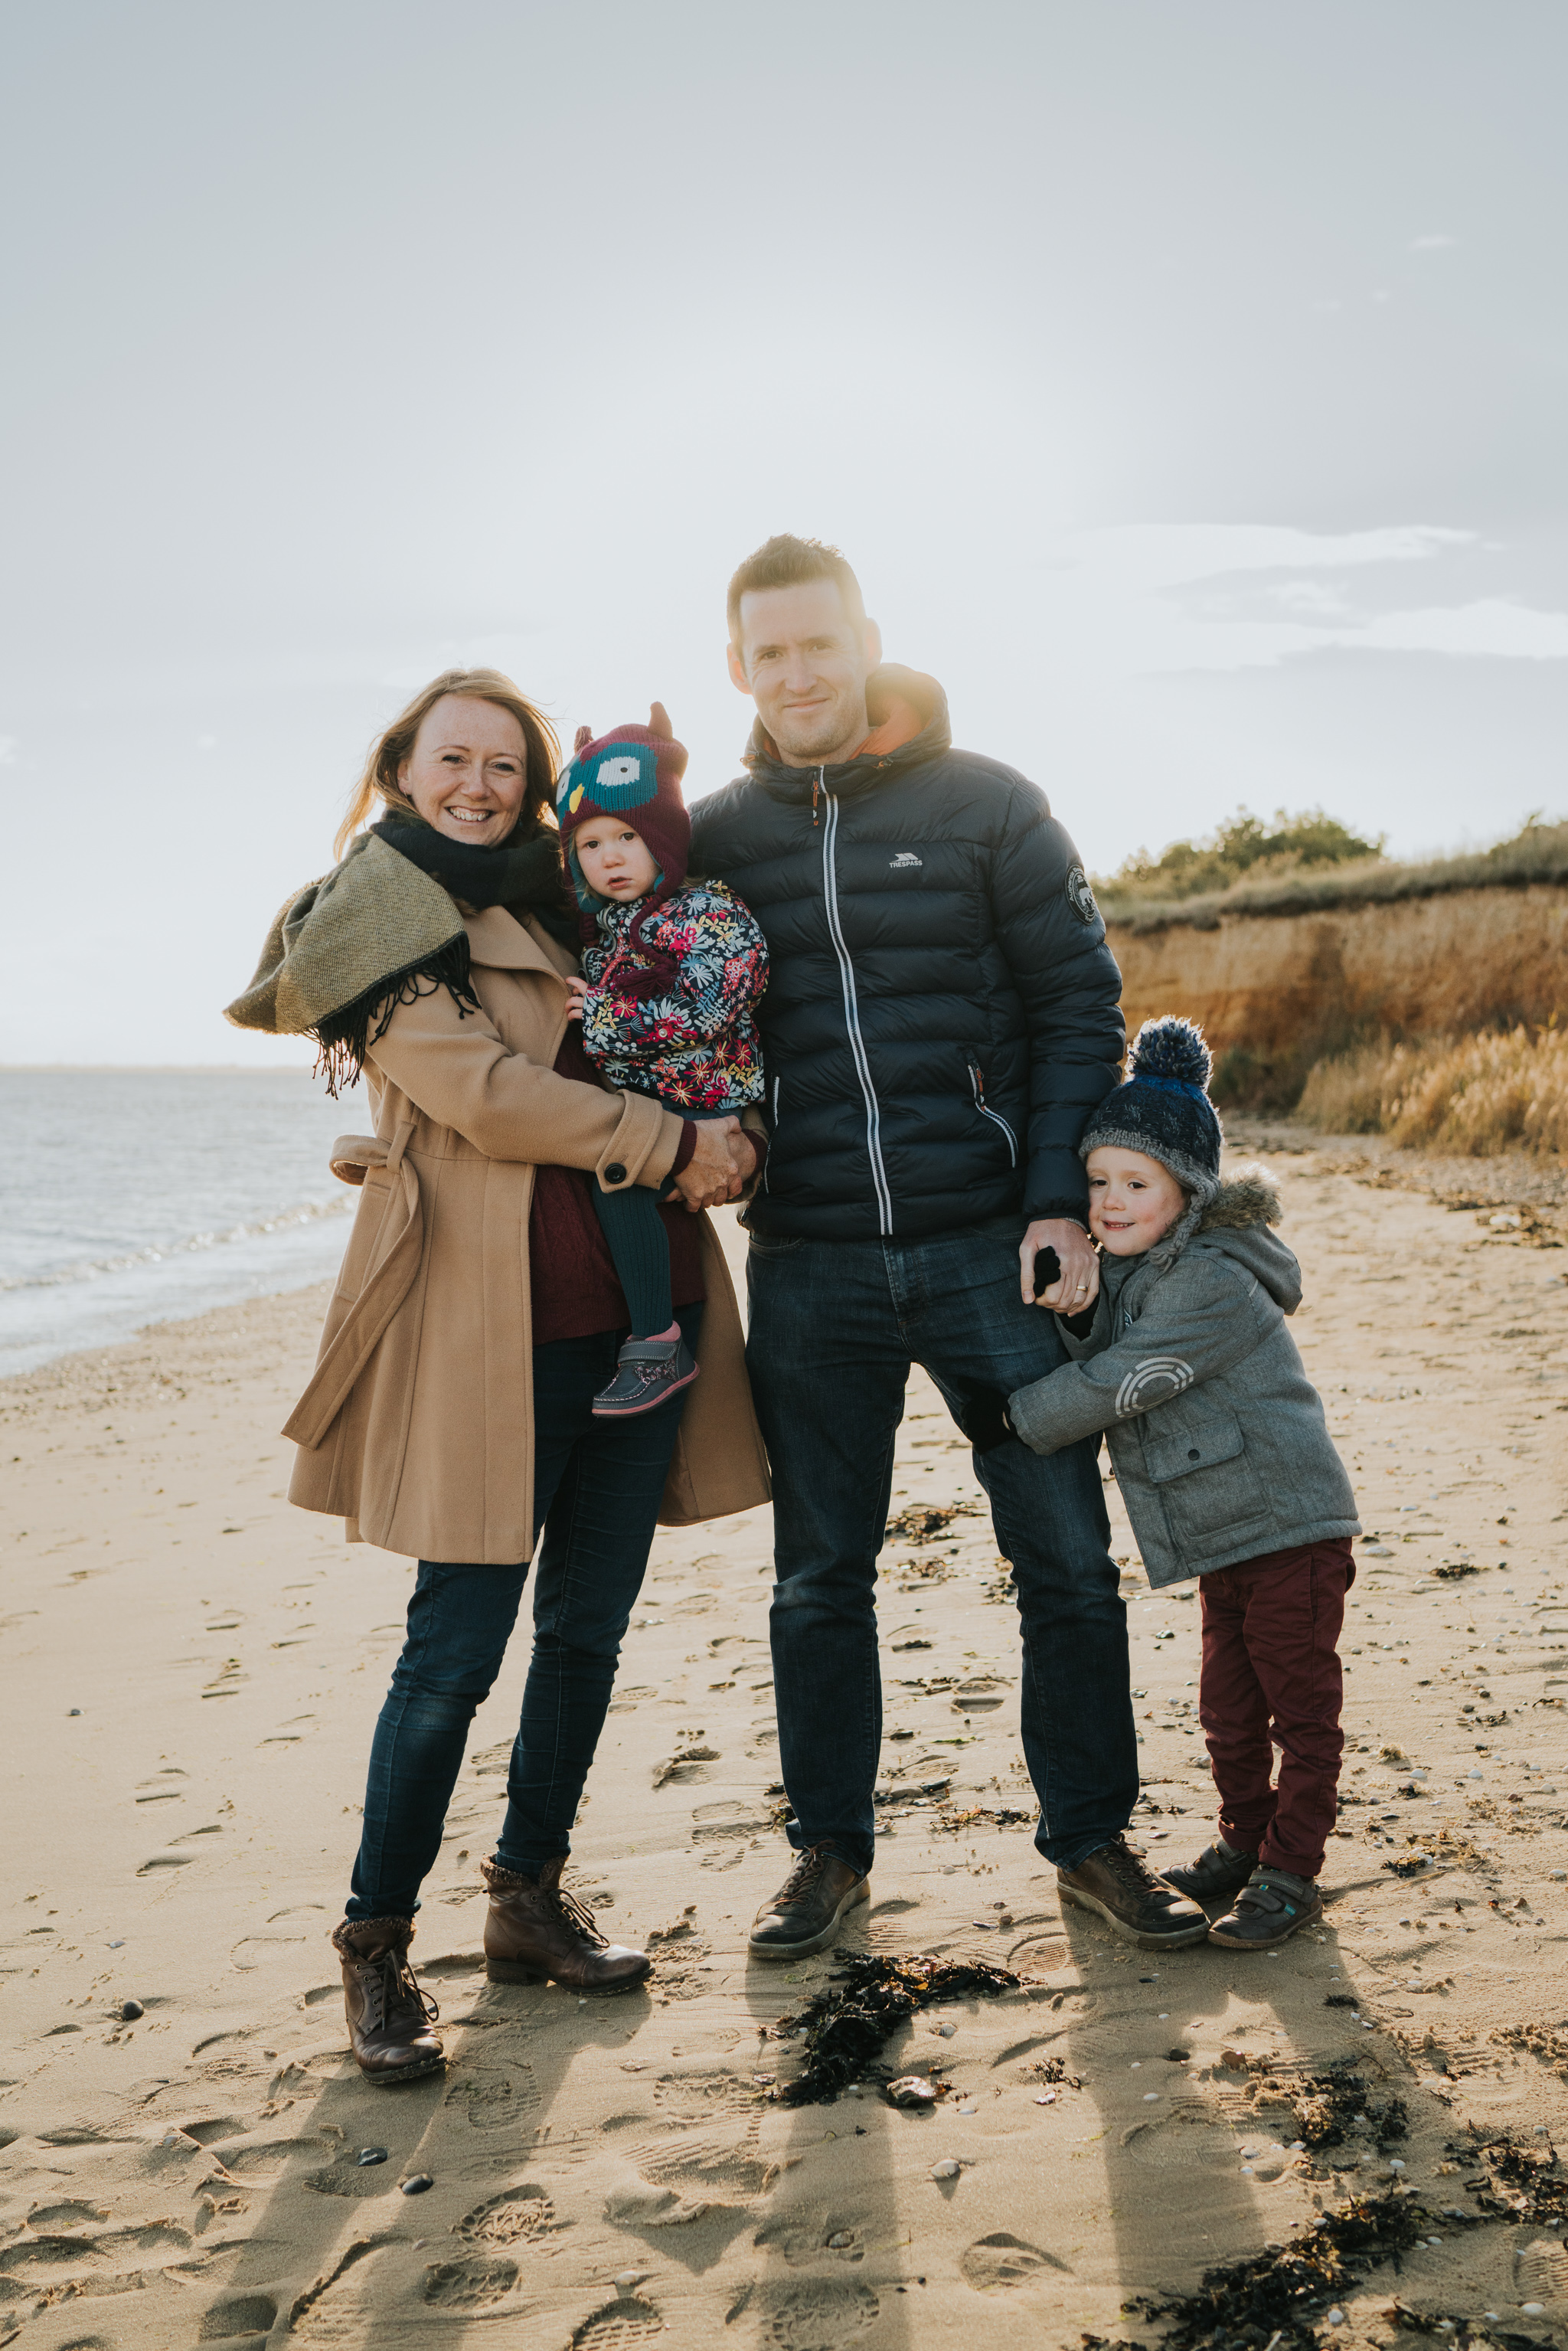 bushell-family-session-beach-cudmore-grove-lifestyle-grace-elizabeth-colchester-essex-alternative-relaxed-wedding-family-photography-devon-suffolk-norfolk-essex (1 of 34).jpg